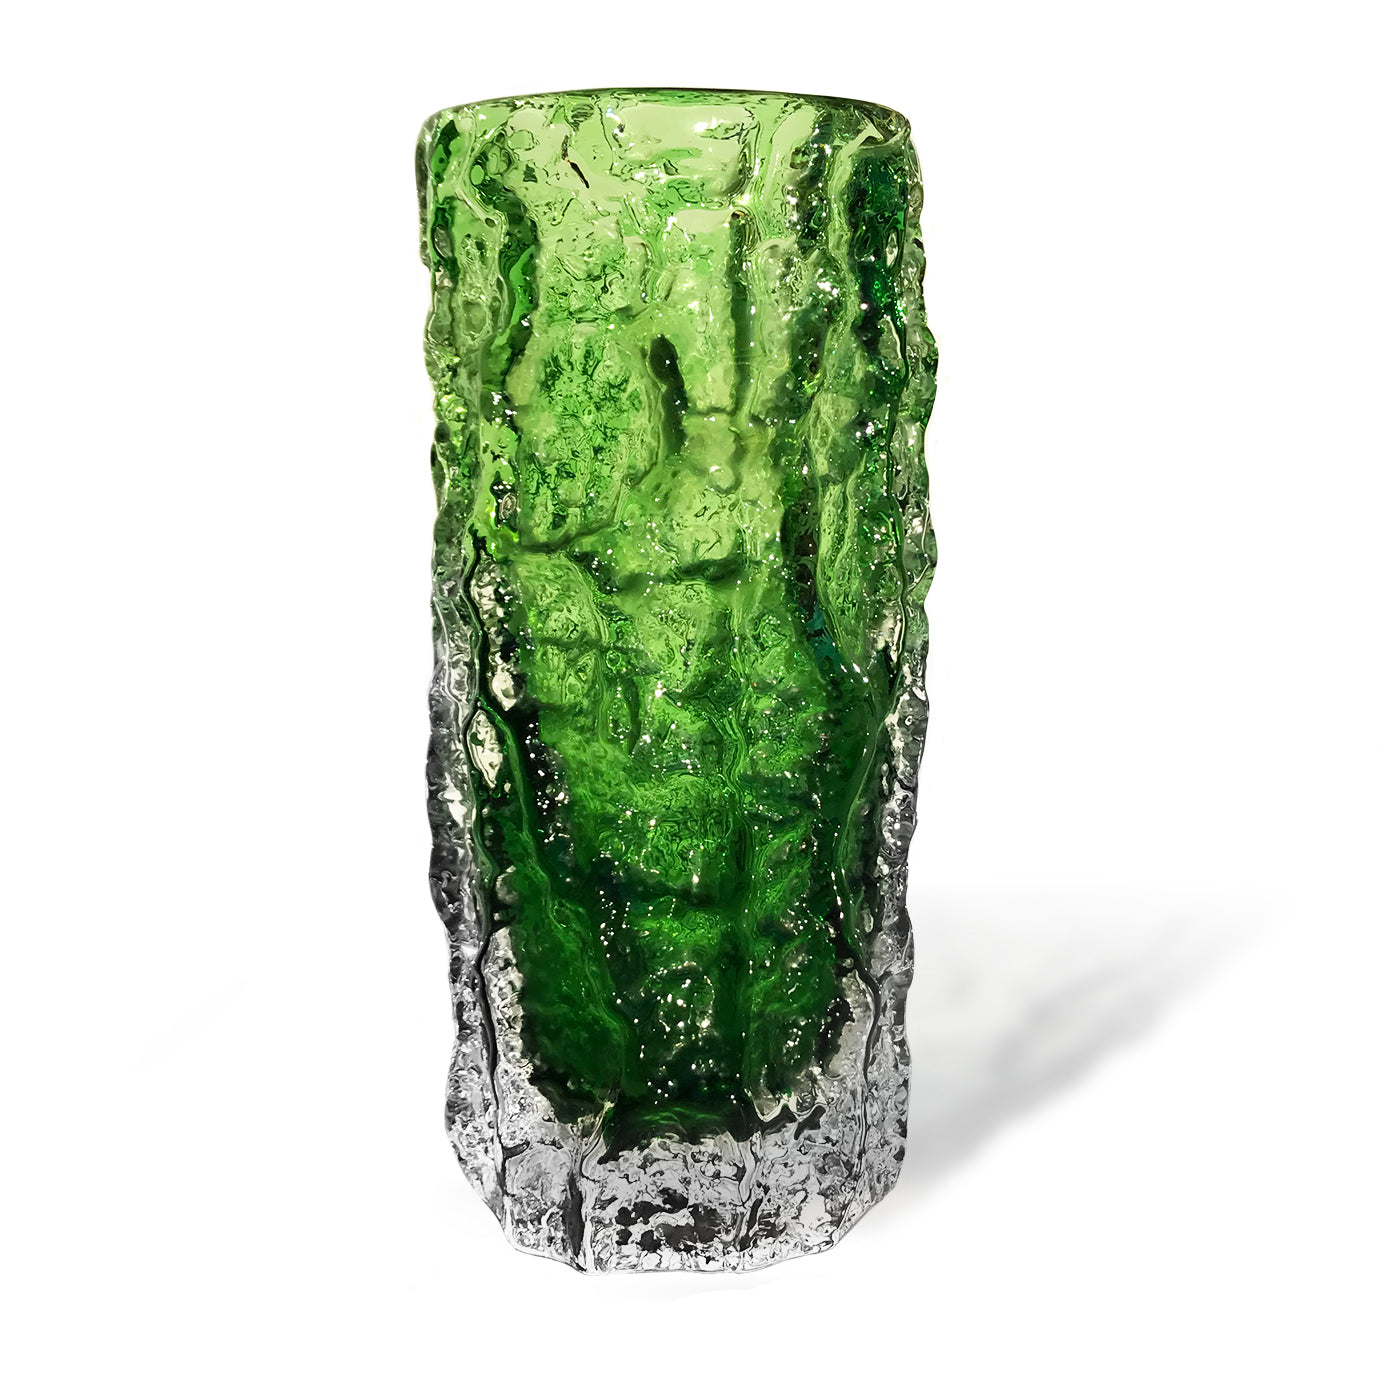 "Whitefriars Meadow Green glass 7.5"" 'Bark' vase"